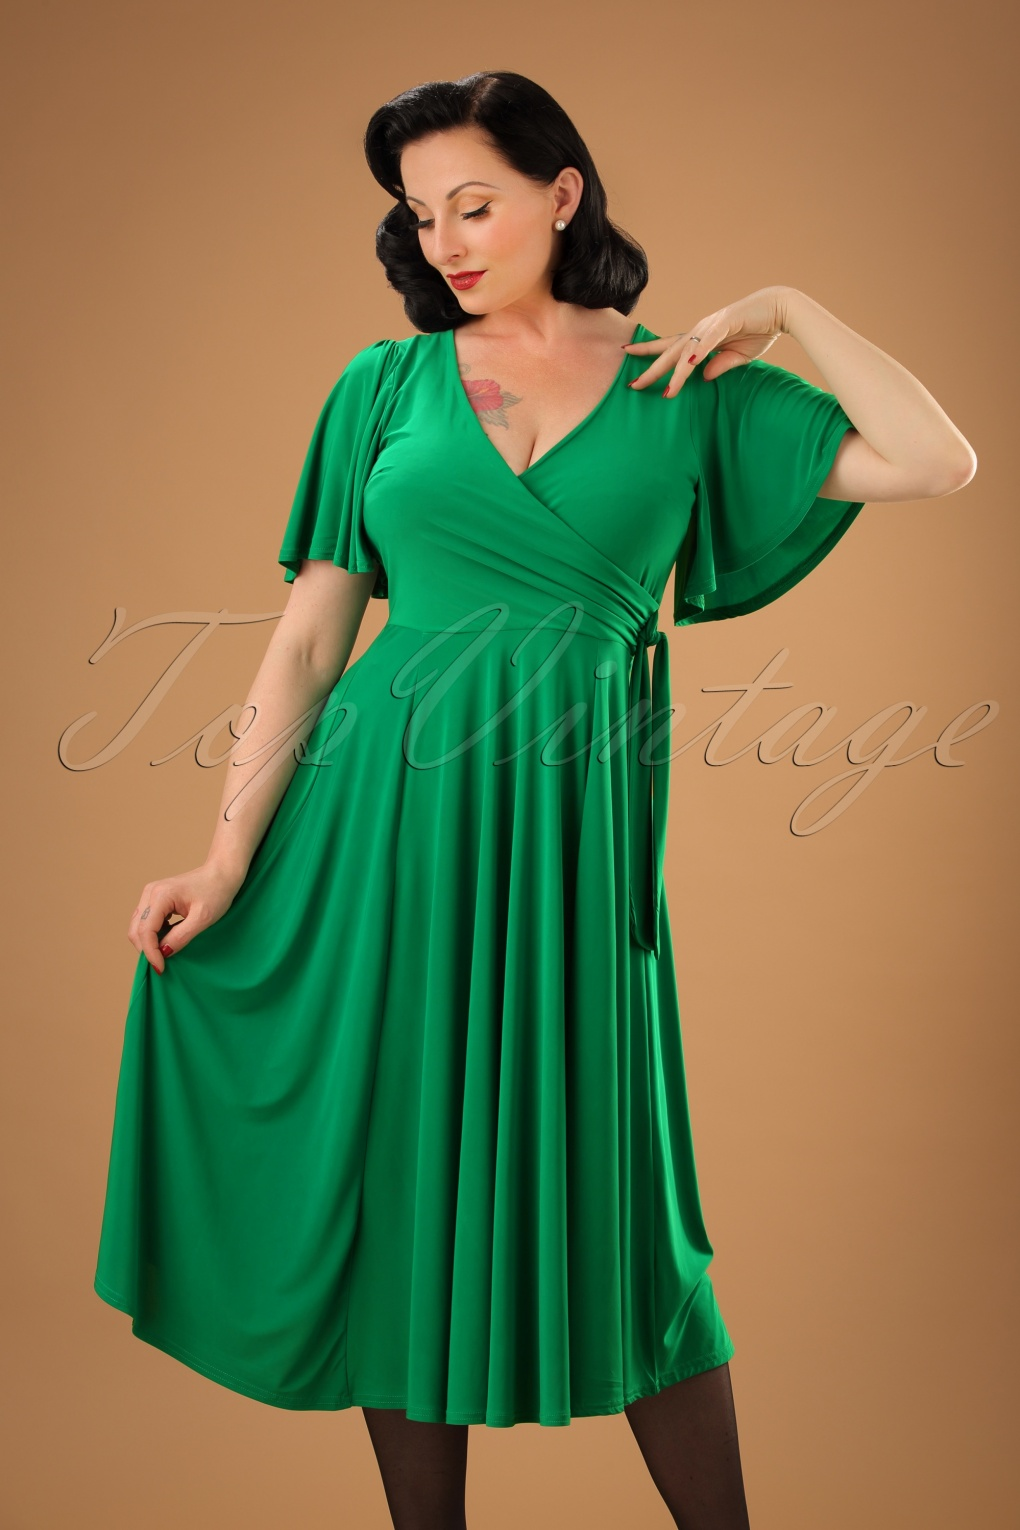 1940s Style Dresses and Clothing 40s Lara Cross Over Swing Dress in Emerald £52.91 AT vintagedancer.com